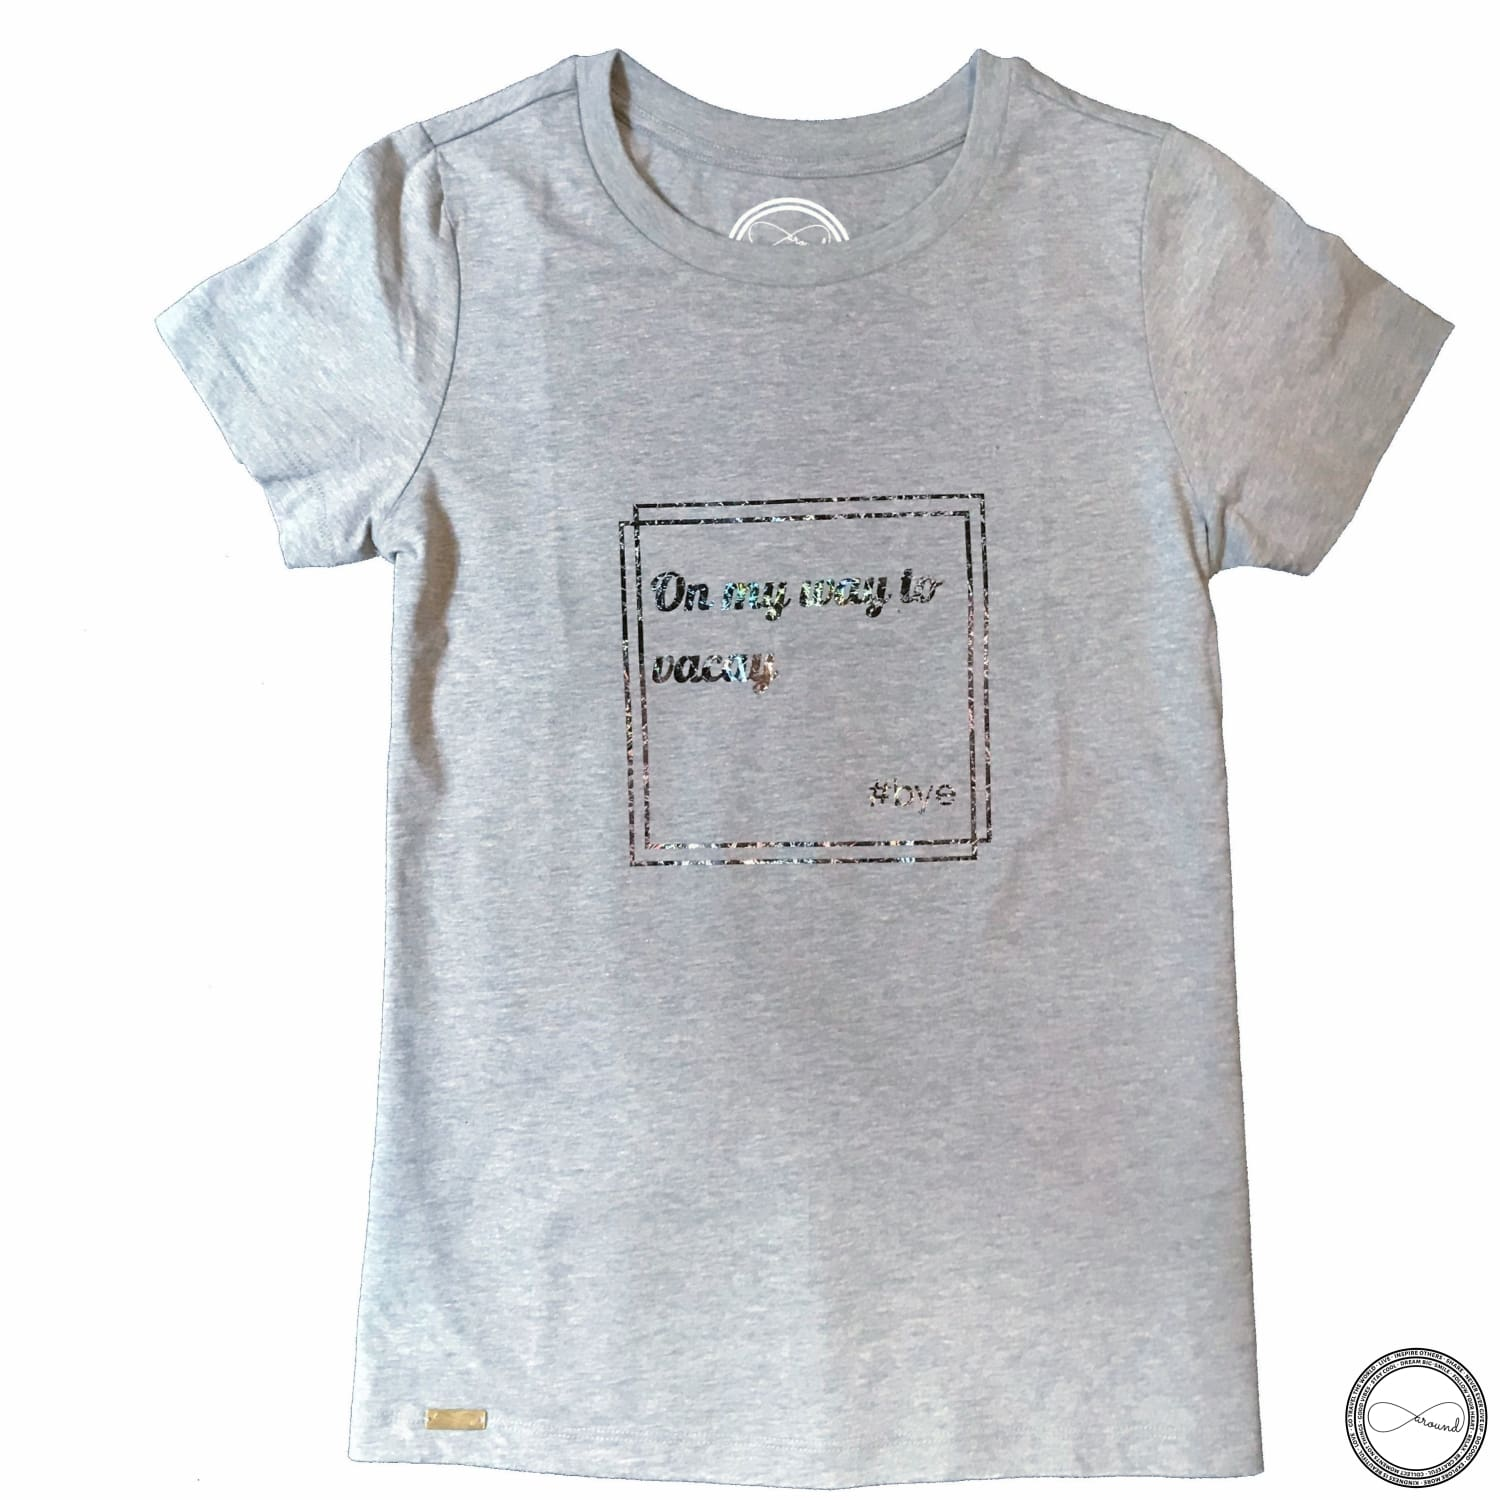 Custom made Around Eco fair trade and ecofriendly light gray graphic tee with the words On My Way To Vacay #bye T-shirt